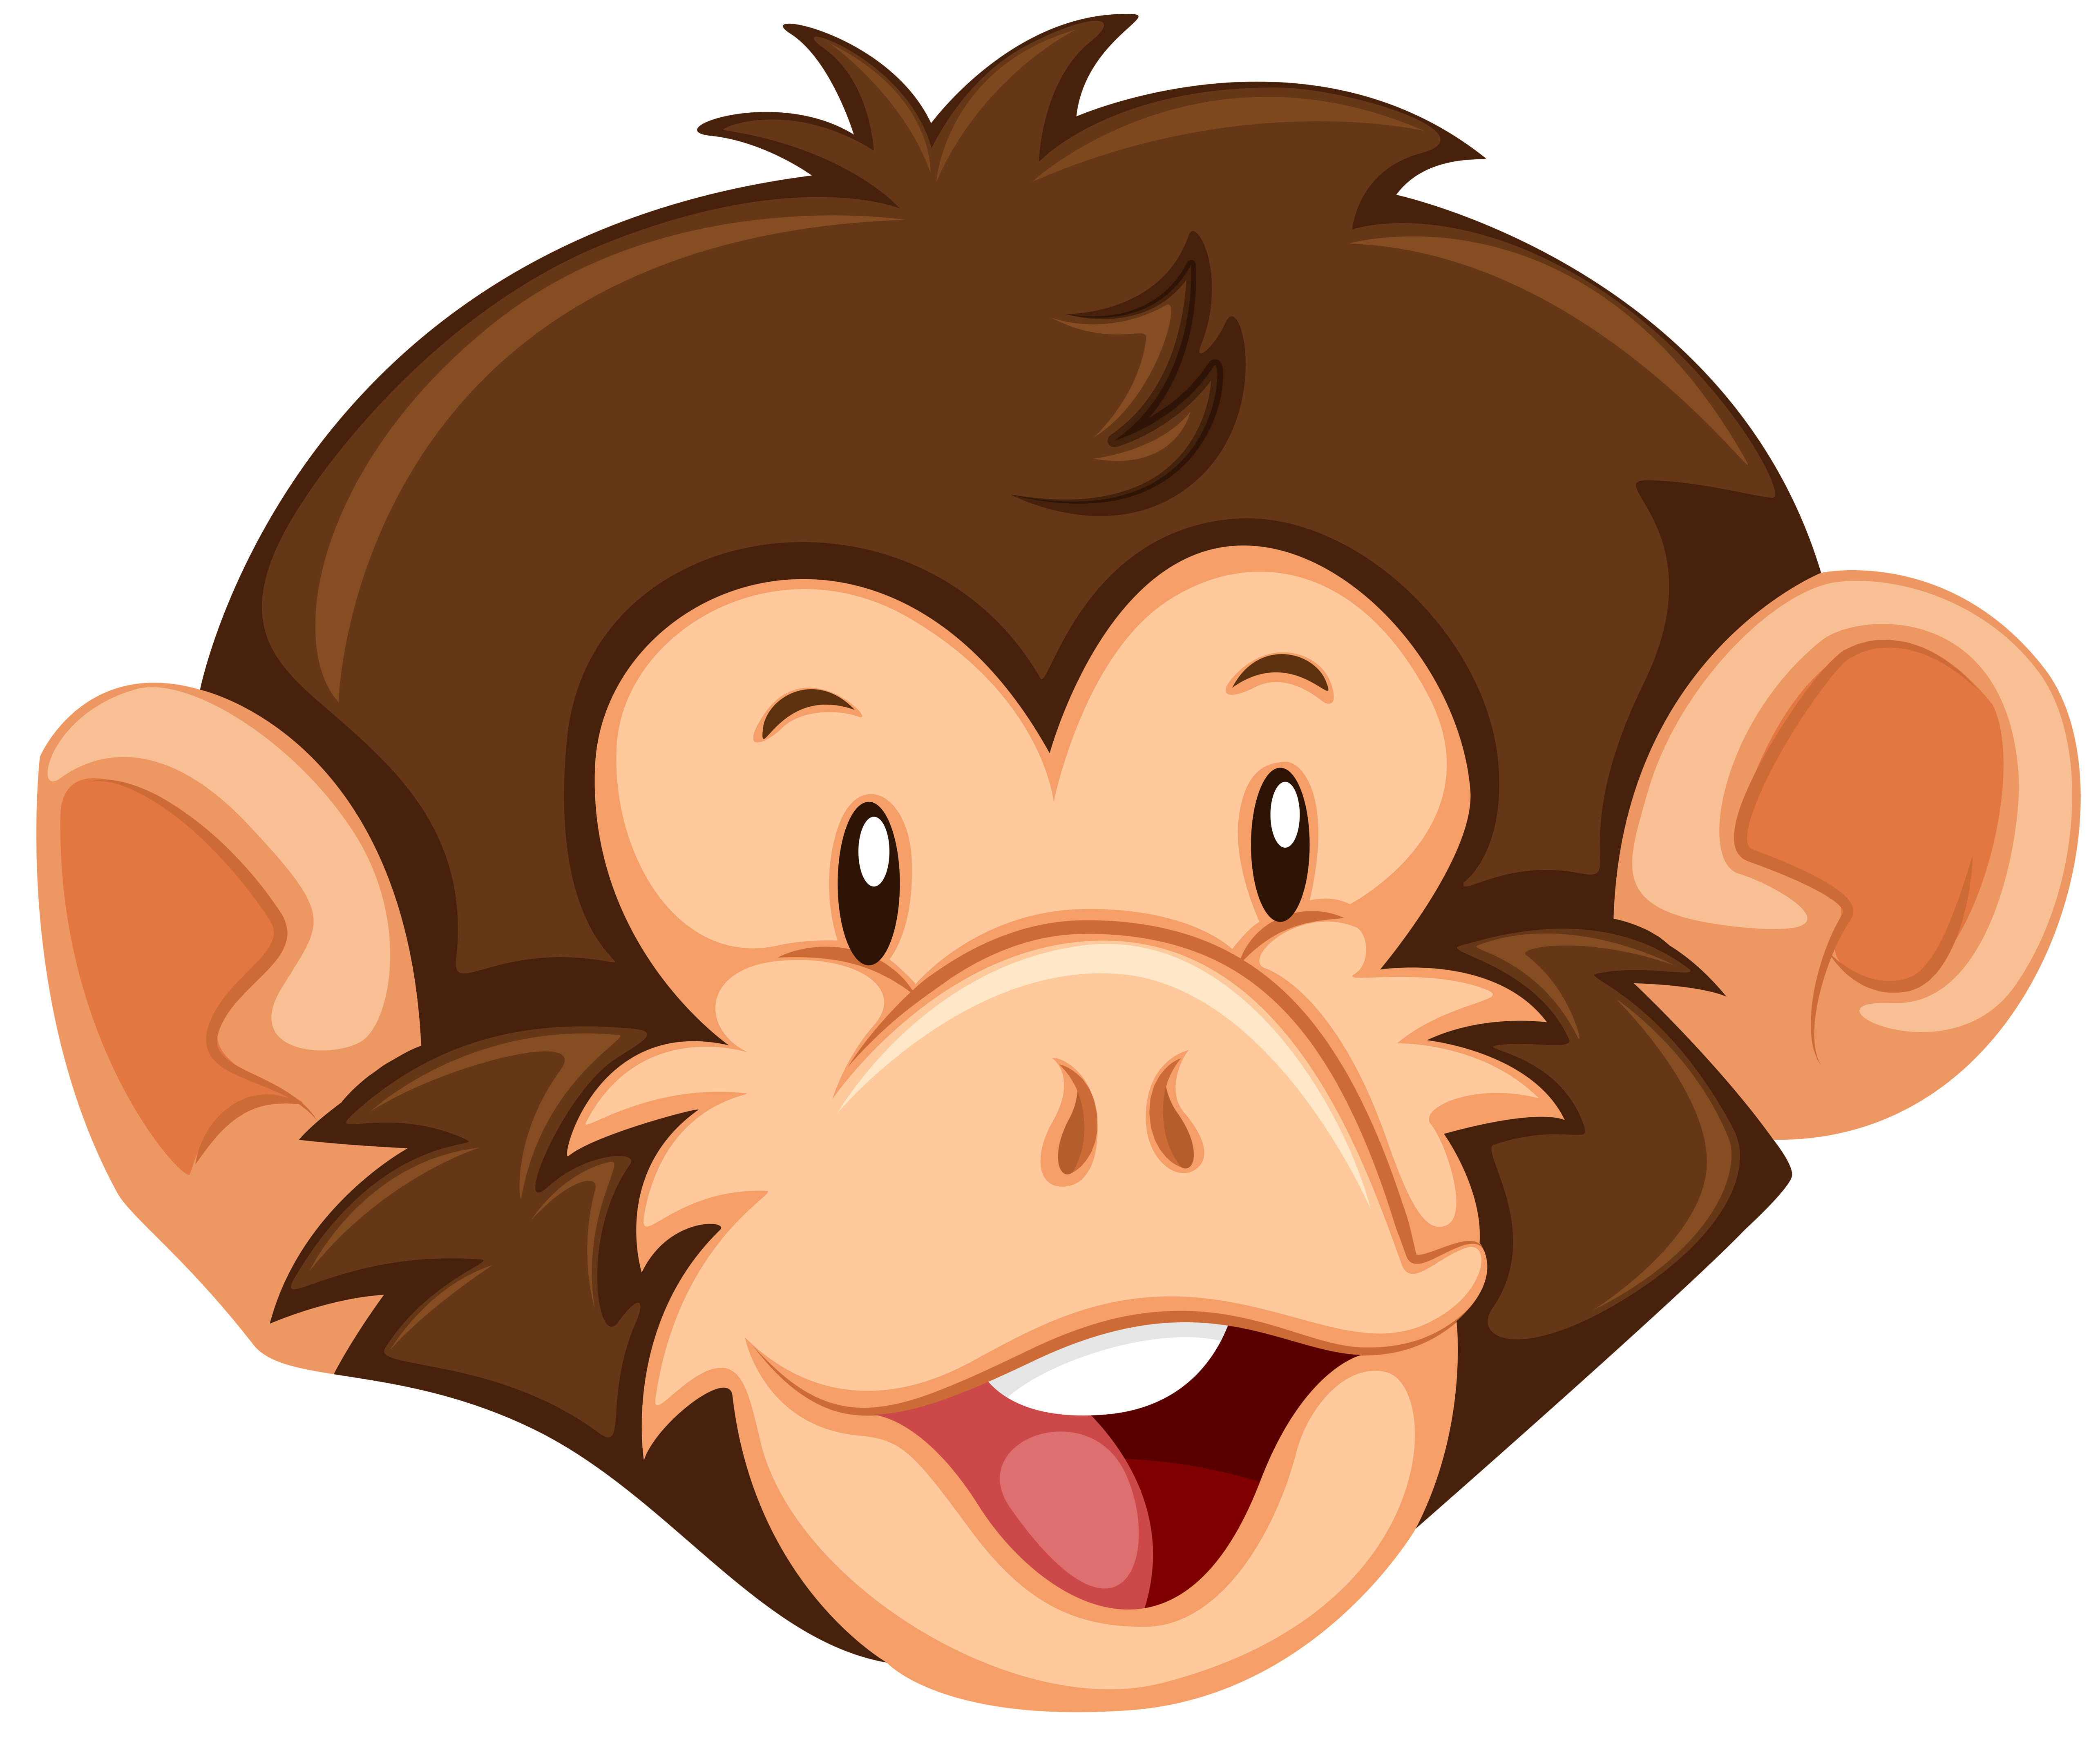 A monkey face on white background - Download Free Vectors ...